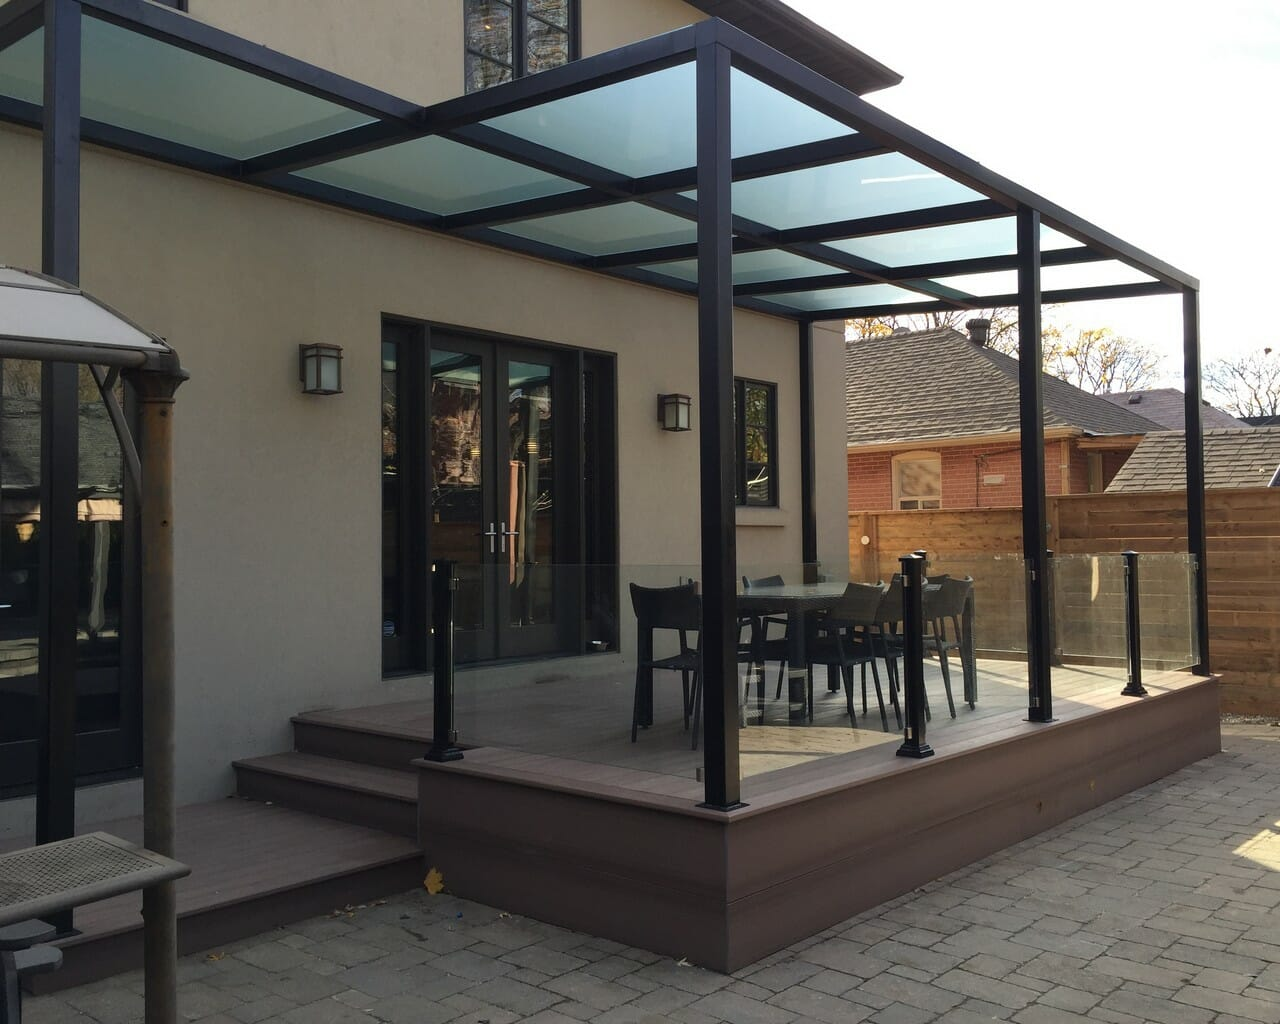 pvc deck with pergola and glass railings m e contracting toronto landscaping design. Black Bedroom Furniture Sets. Home Design Ideas